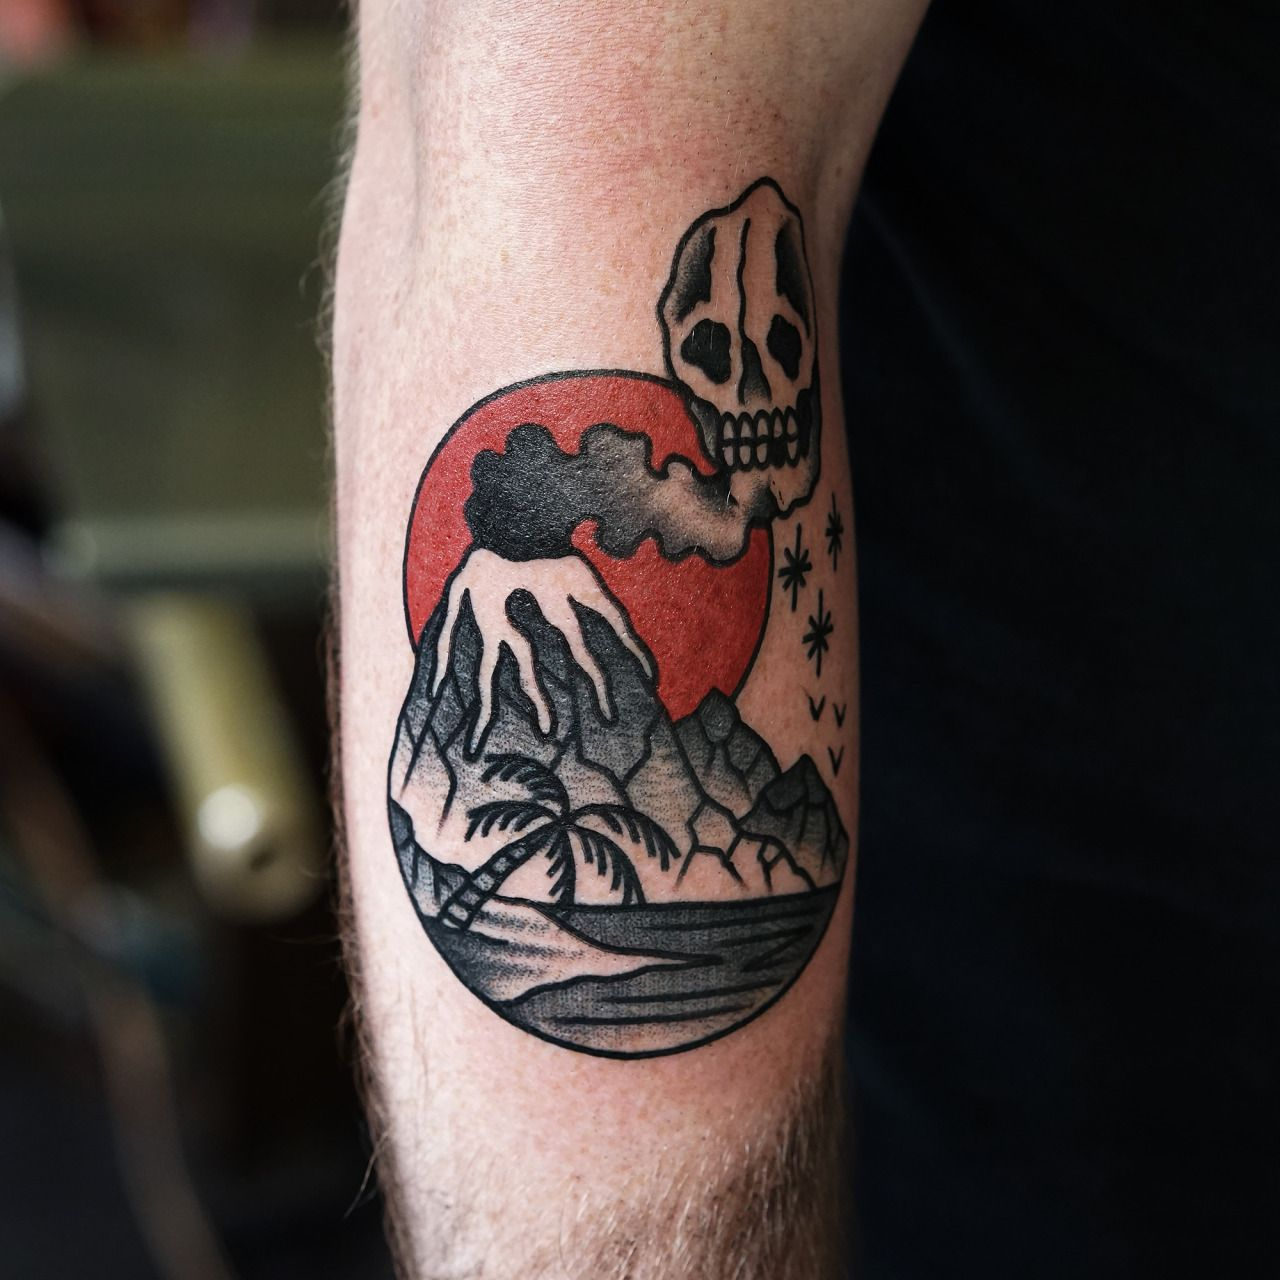 Volcano Tattoo Tumblr Mom Tattoos Tattoos Classic Tattoo